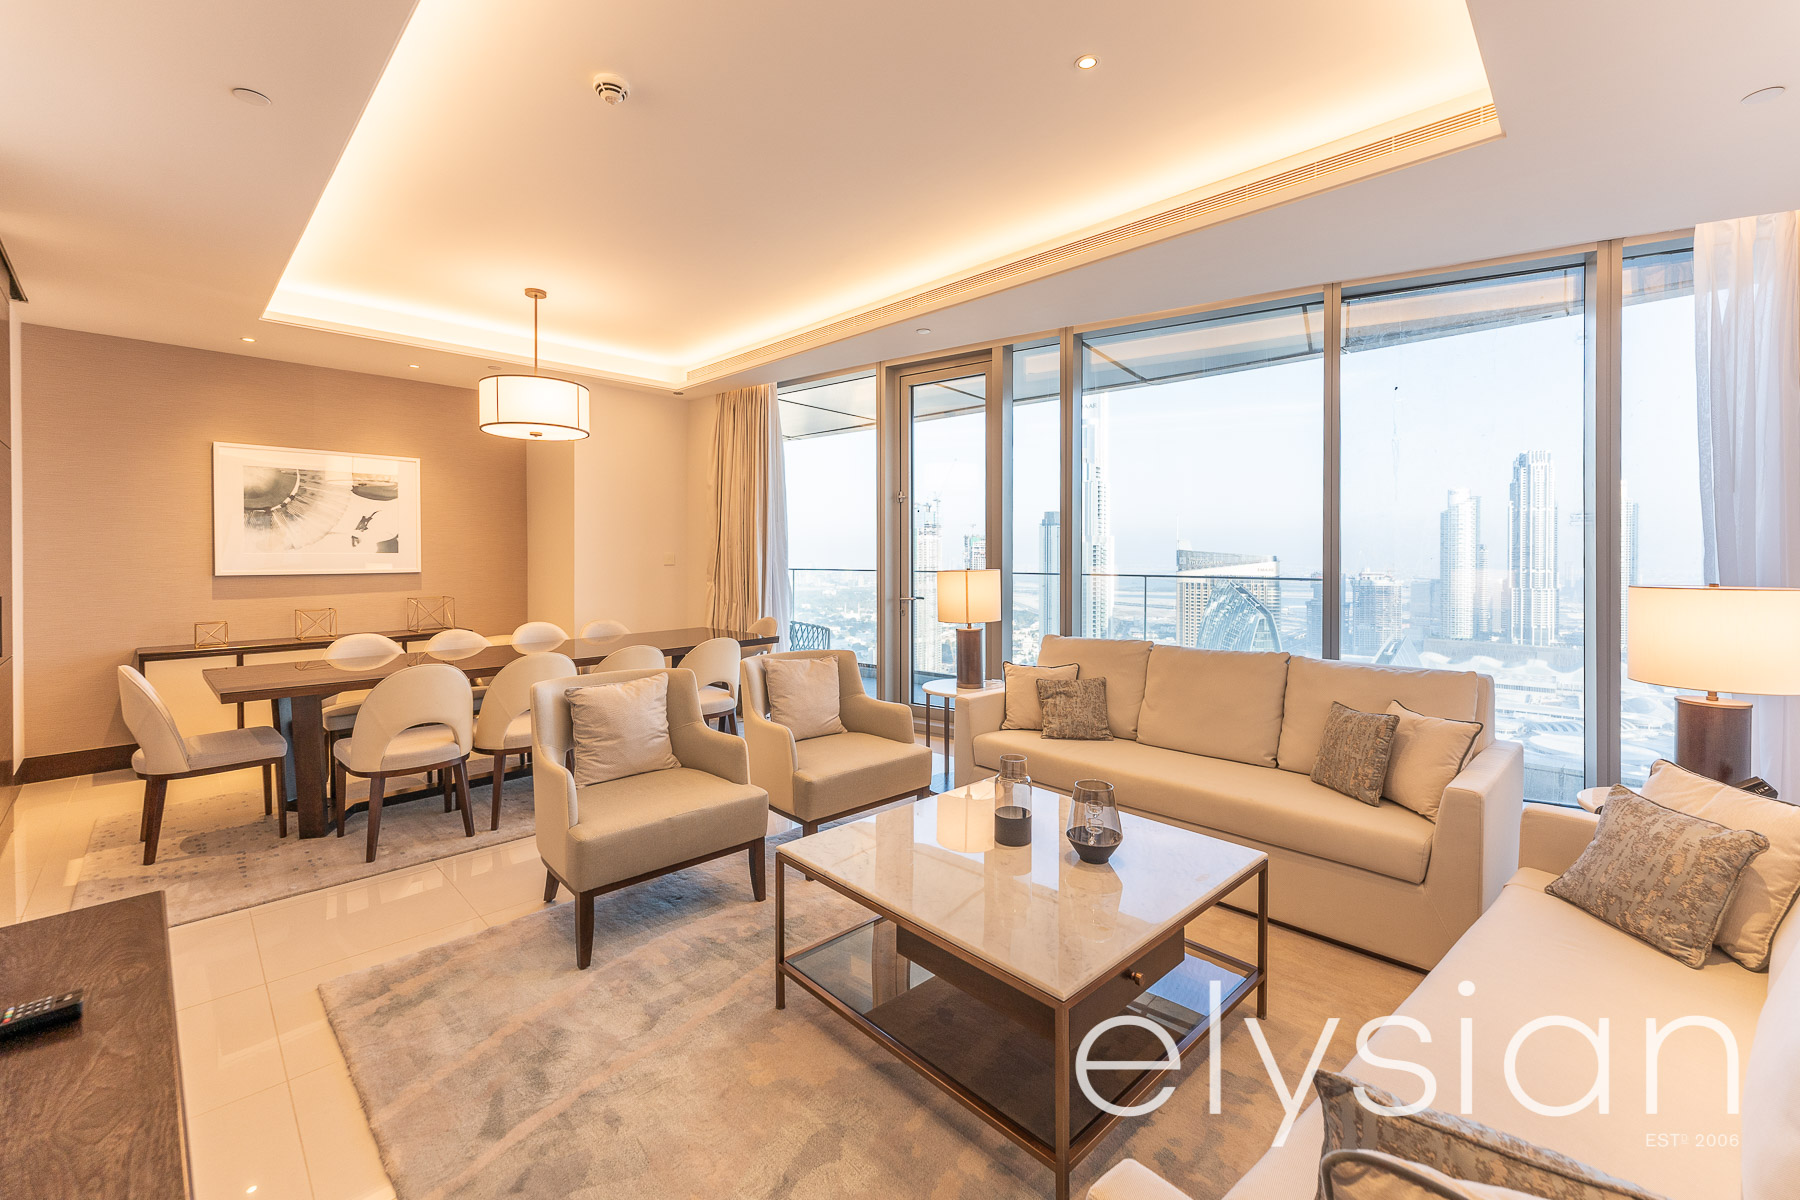 Best Property Stunning Furnished 4 Bedrooms | Sky Views